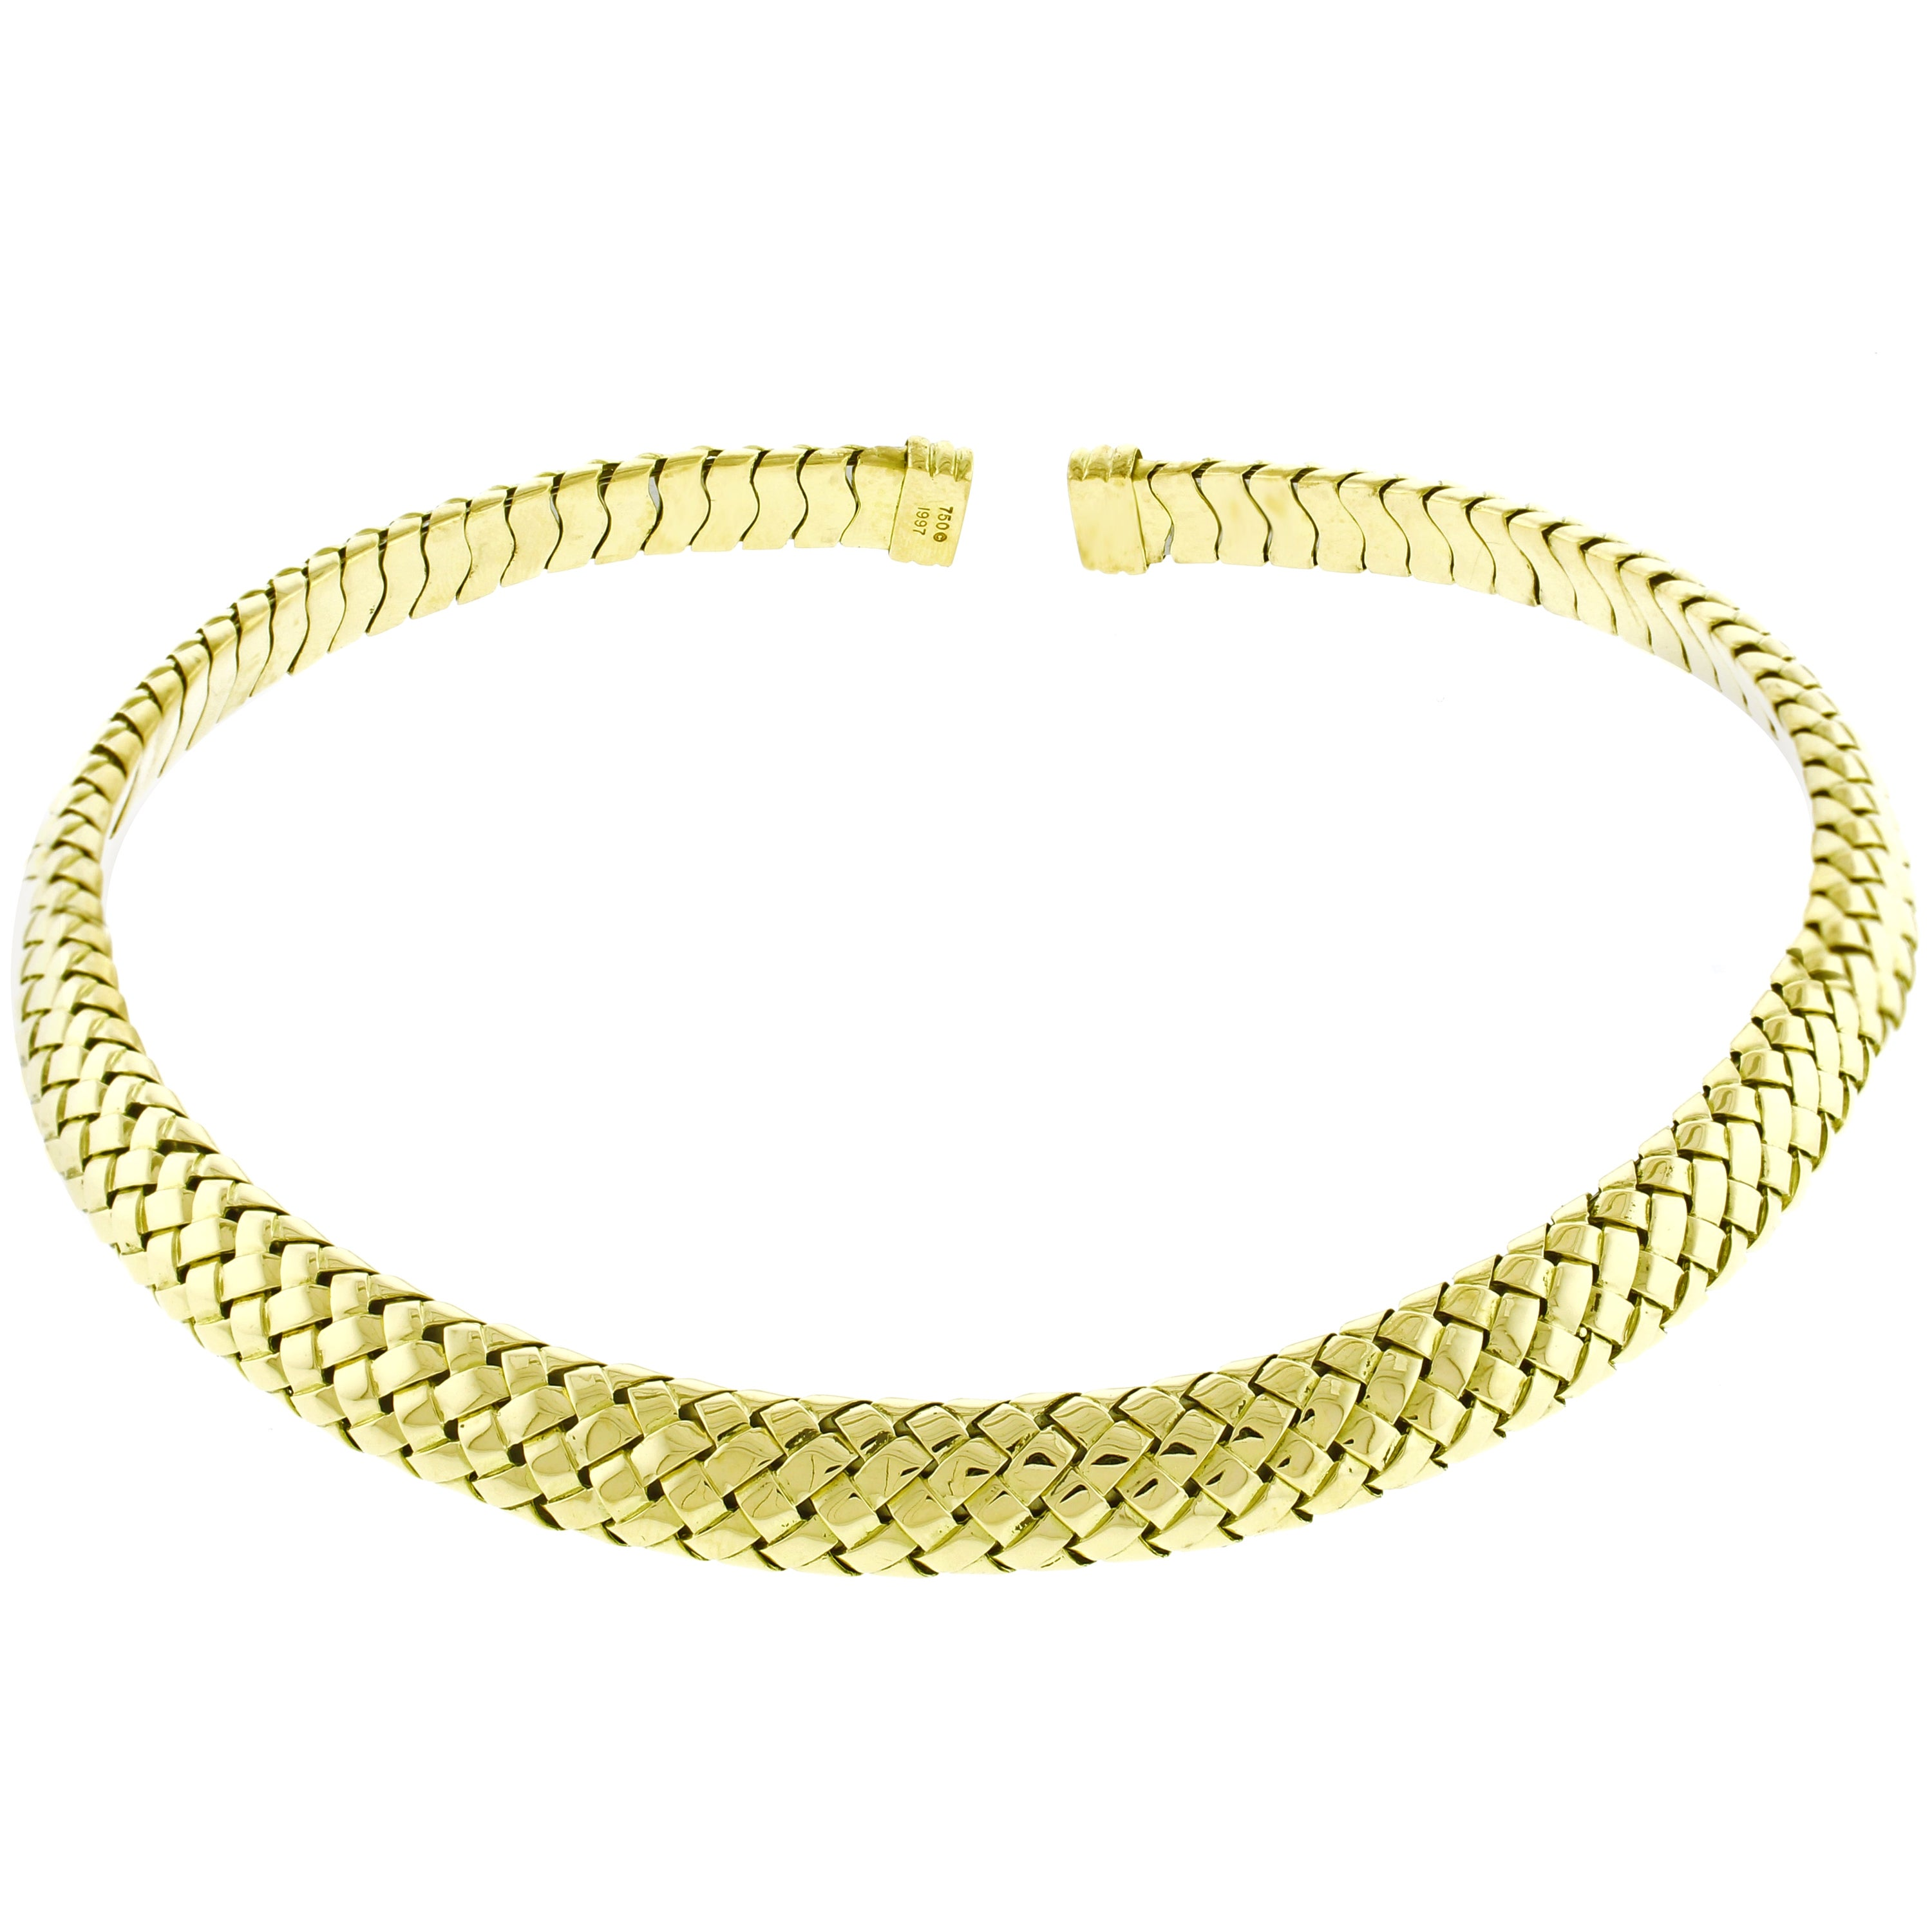 Tiffany & Co. Vannerie Mesh Yellow Gold Necklace Choker